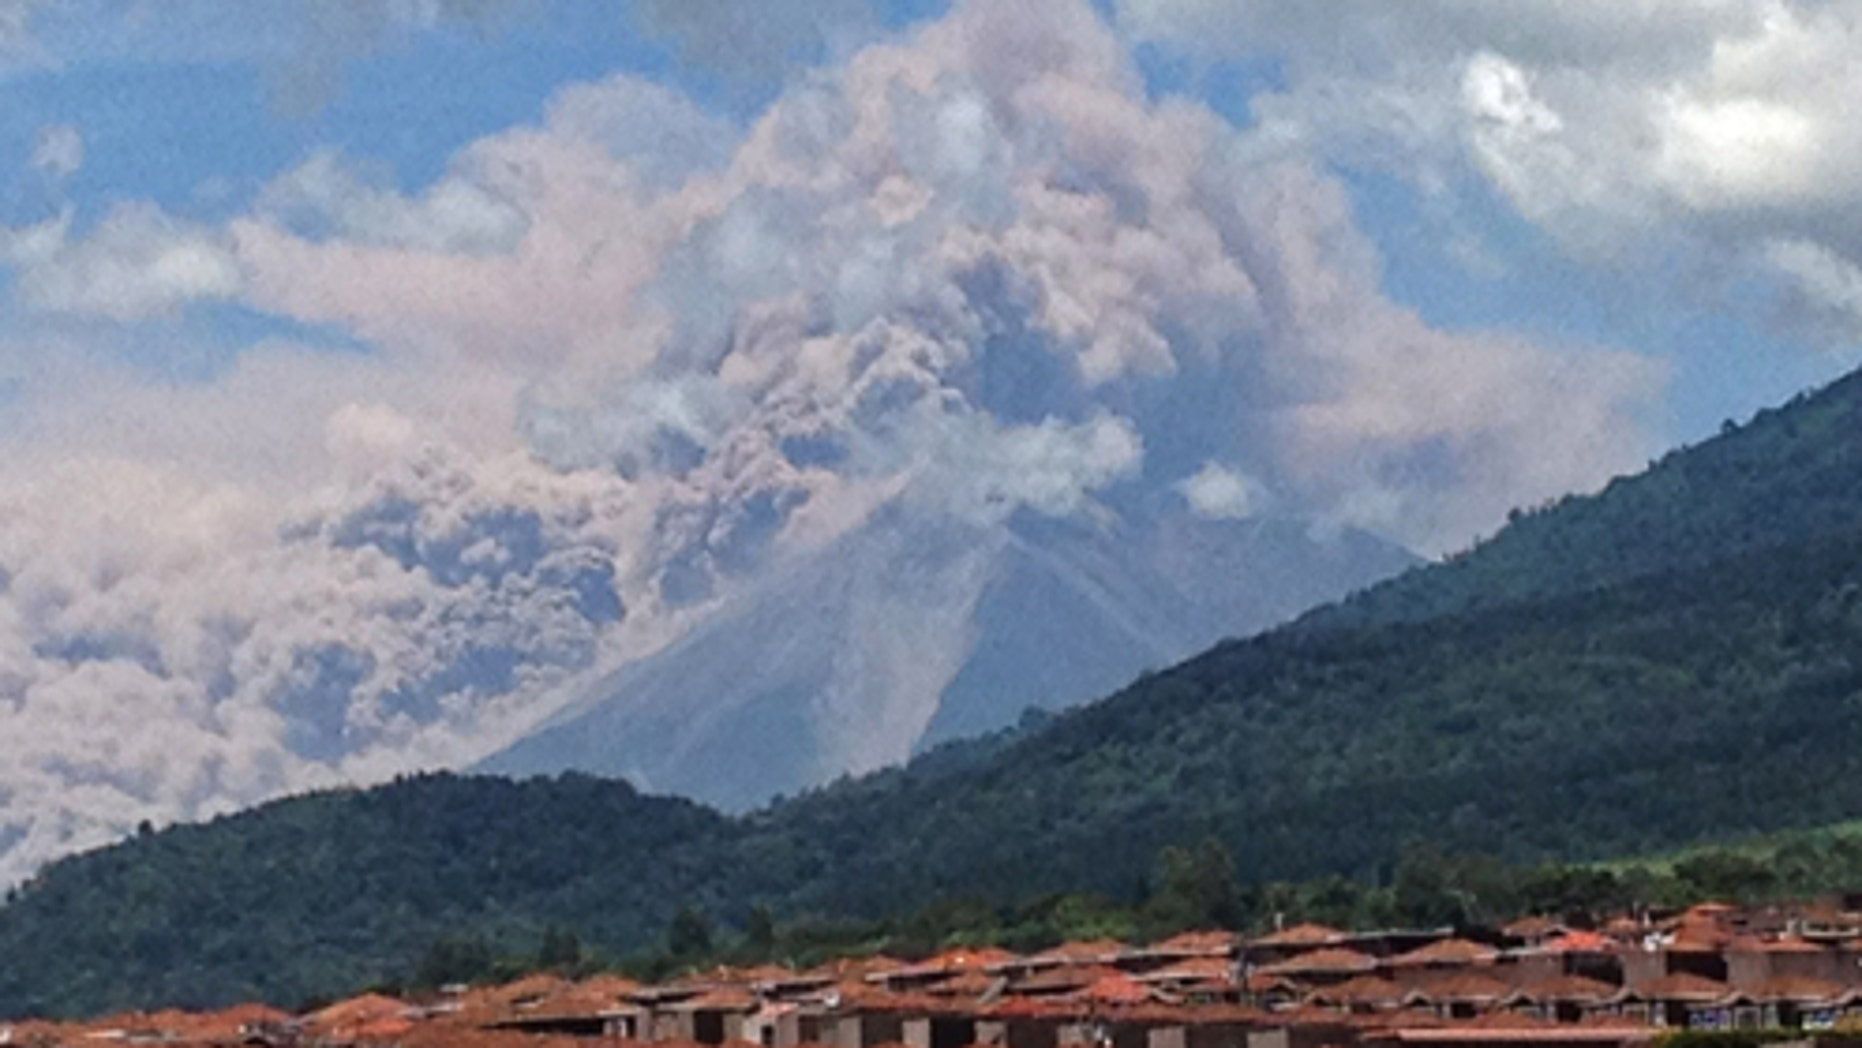 In this image with a cell phone plumes of smoke rise from the Volcan de Fuego or Volcano of Fire spews ash seen from Palin, south of Guatemala City, Thursday, Sept. 13, 2012. The volcano is spewing lava and ash and the director of the national disaster agency says officials are carrying out âa massive evacuation of thousands of peopleâ in five communities. (AP Photo/Moises Castillo)